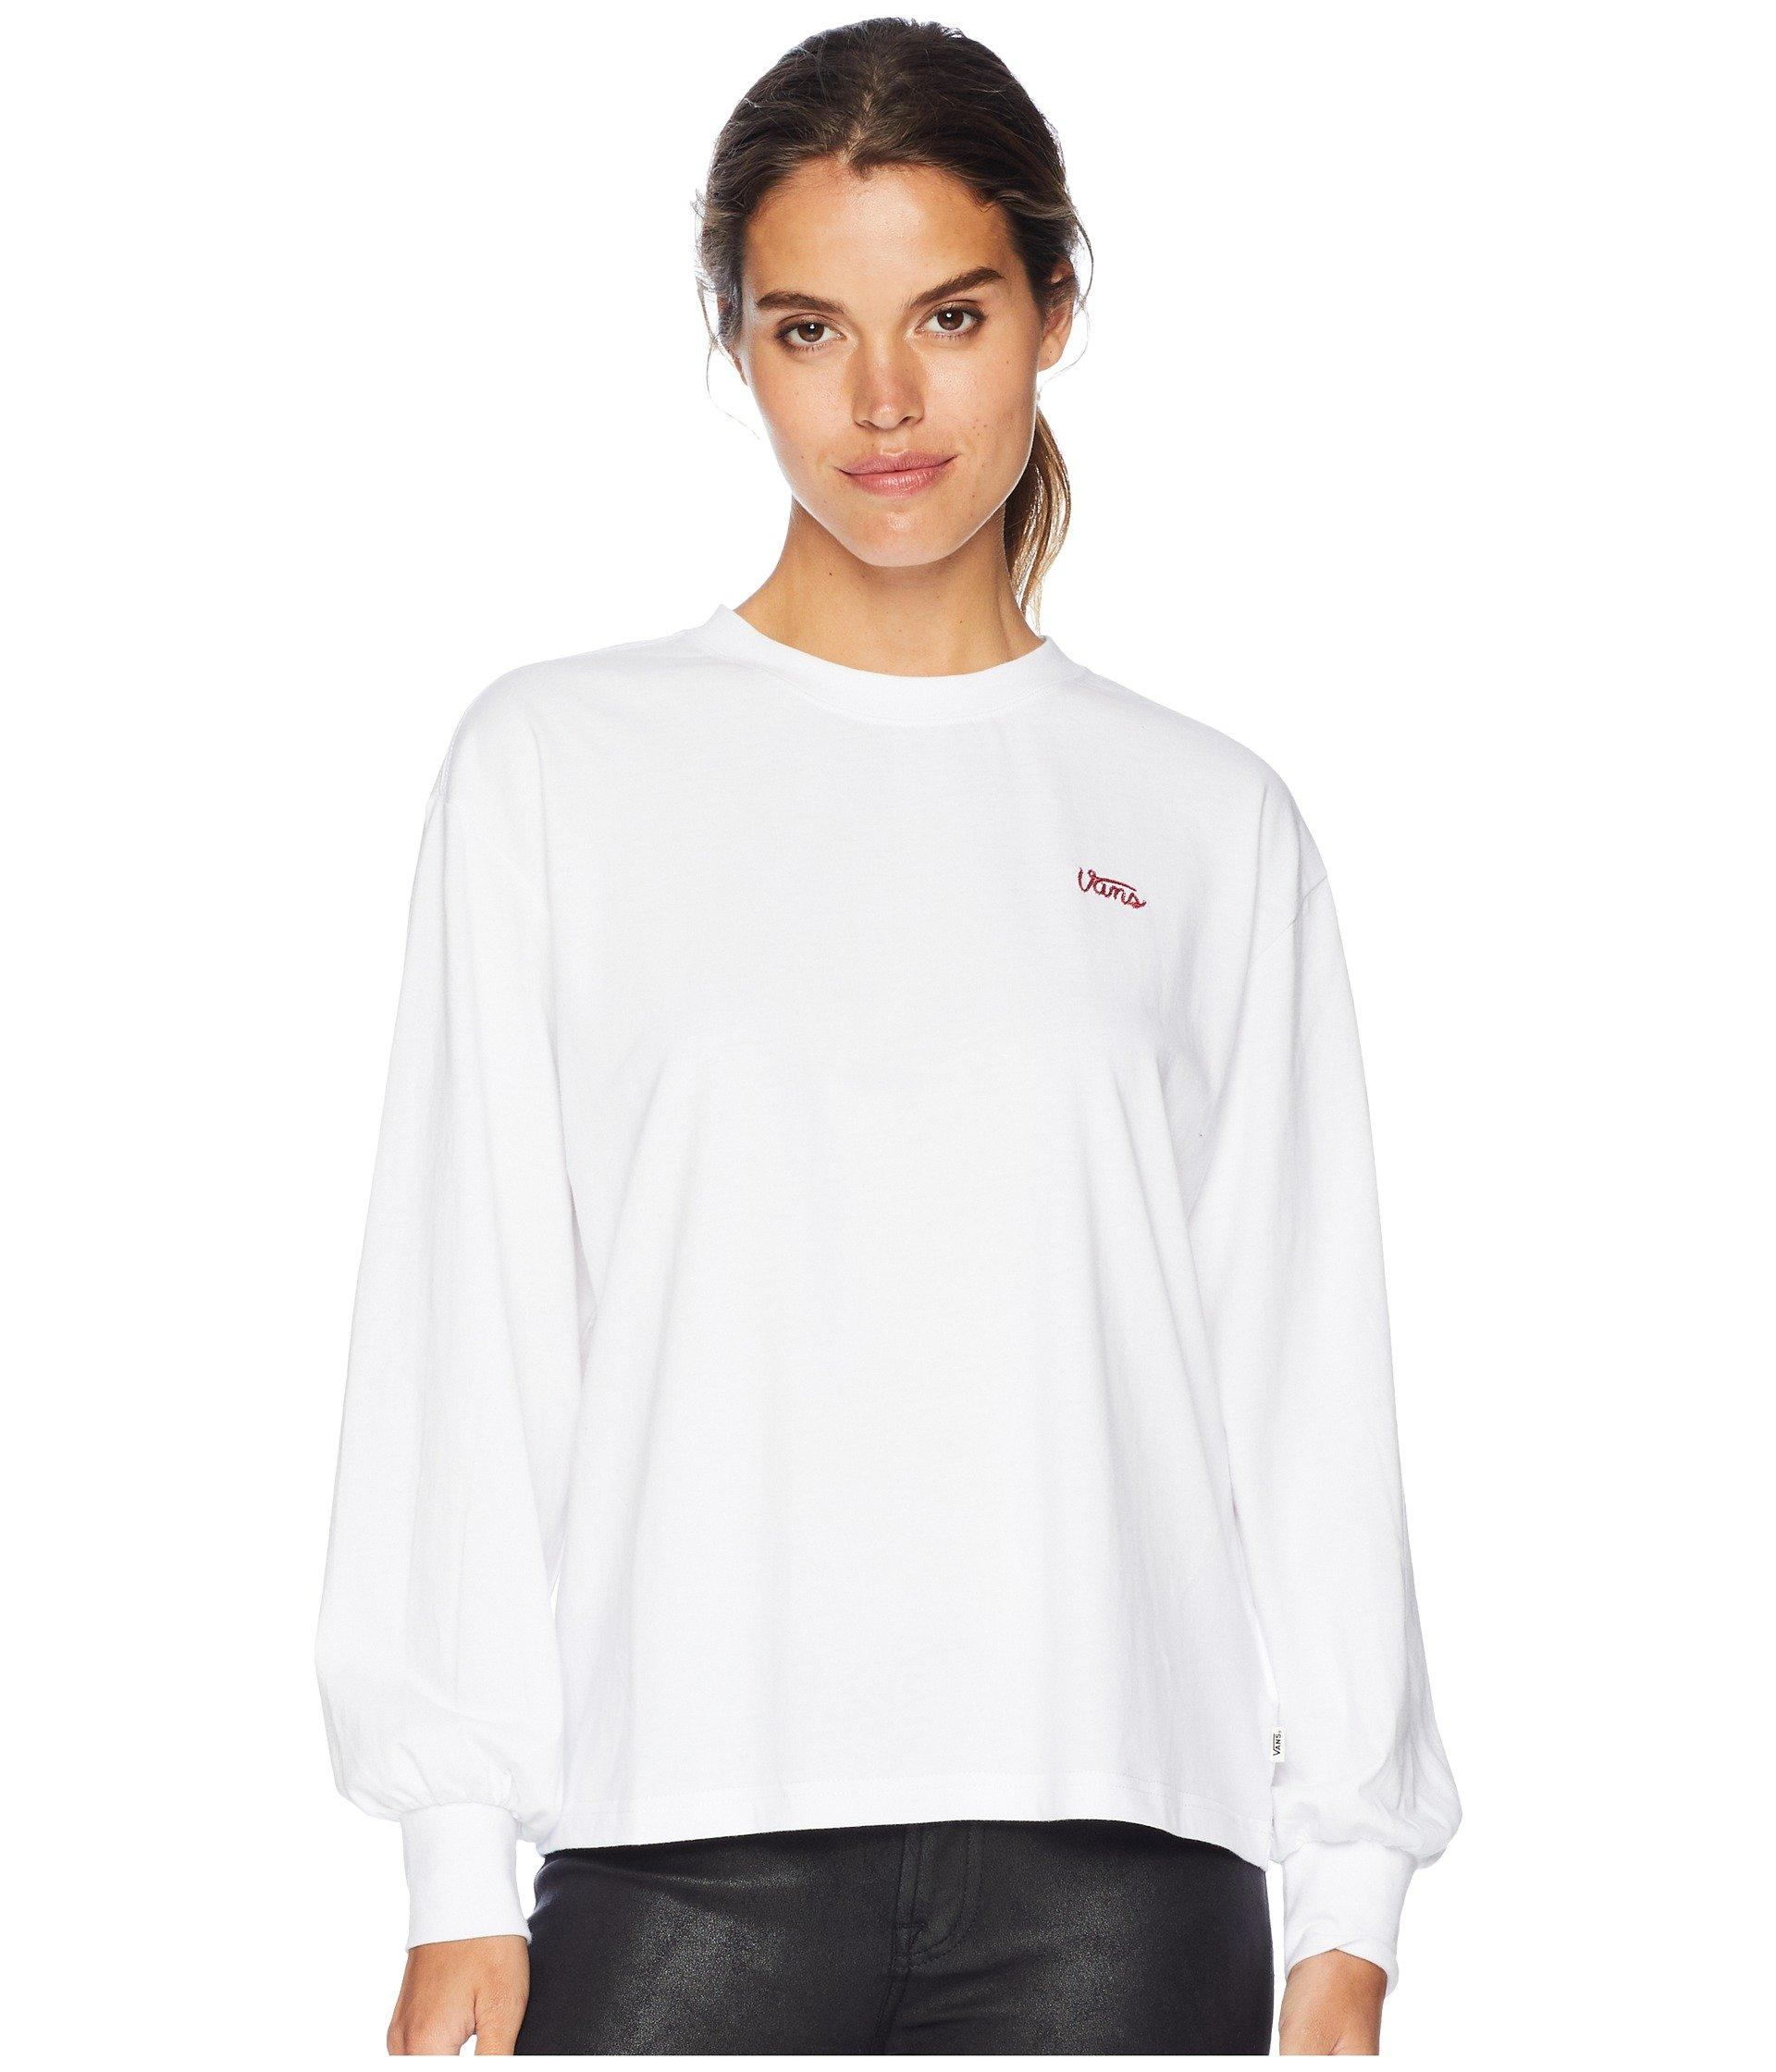 c715f1f6592e70 Lyst - Vans Lorraine Long Sleeve Top in White